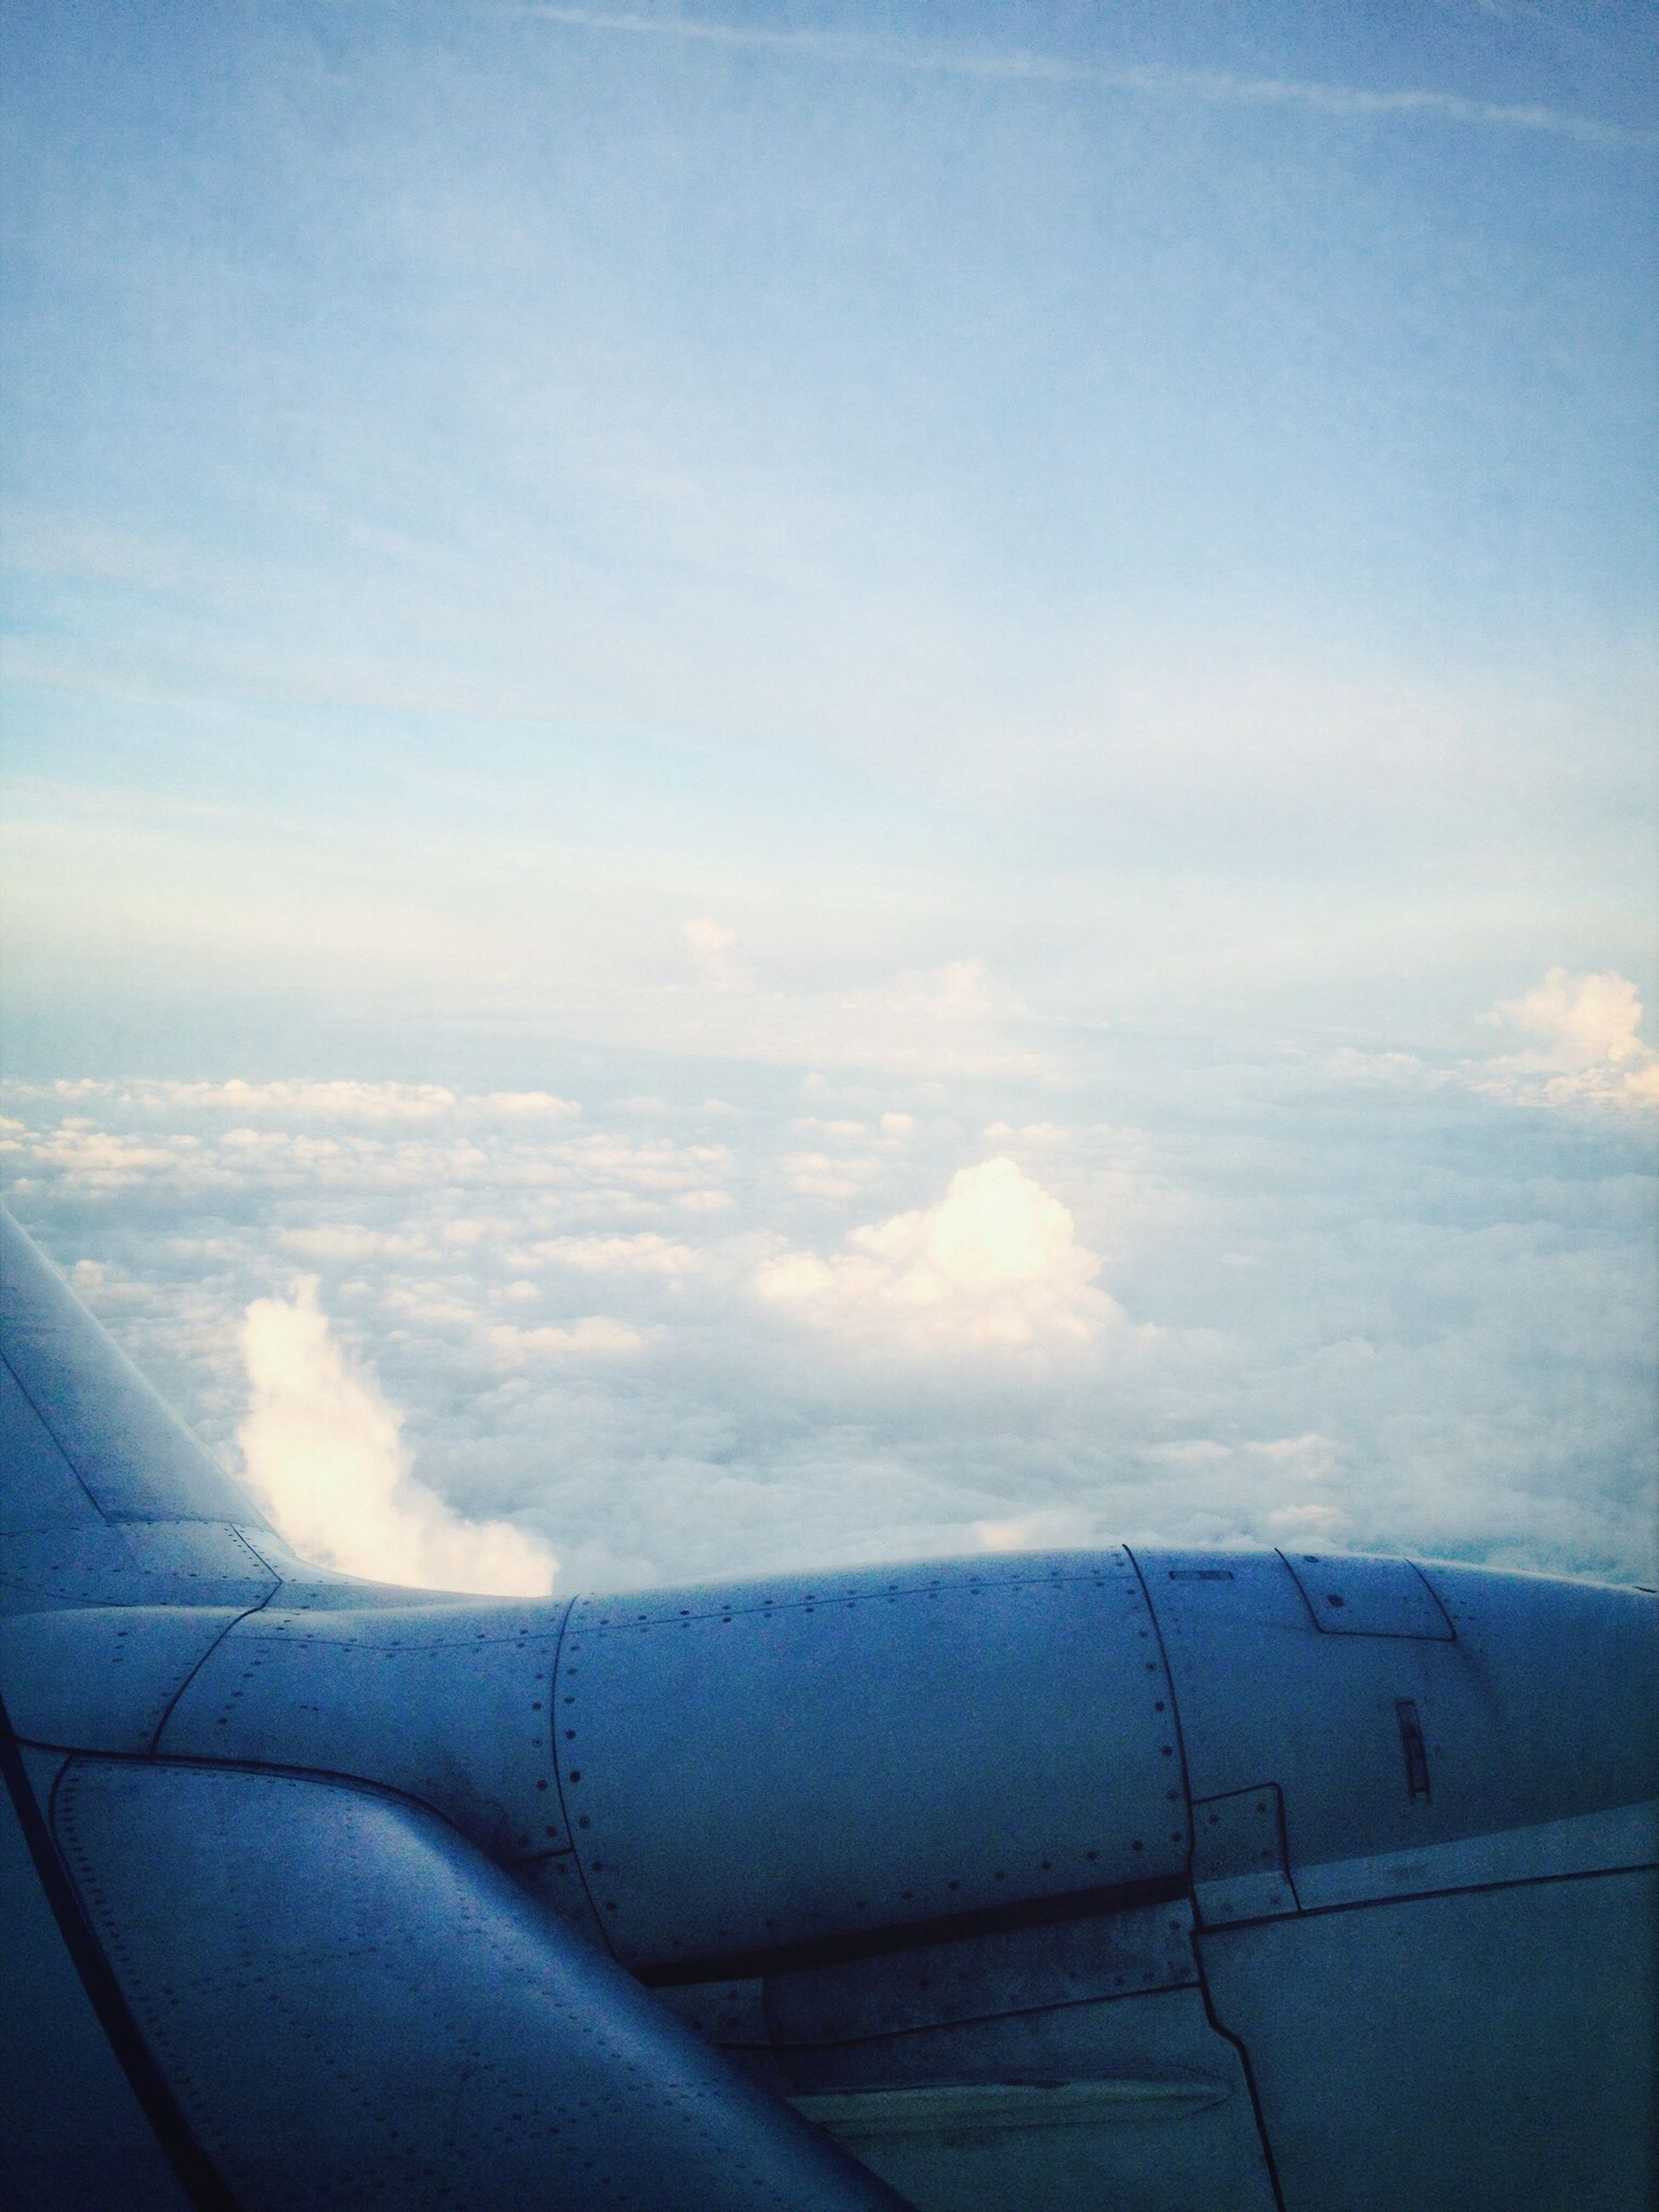 airplane, transportation, air vehicle, mode of transport, sky, aerial view, aircraft wing, part of, cloud - sky, flying, cropped, journey, landscape, travel, scenics, cloud, cloudscape, beauty in nature, vehicle interior, nature